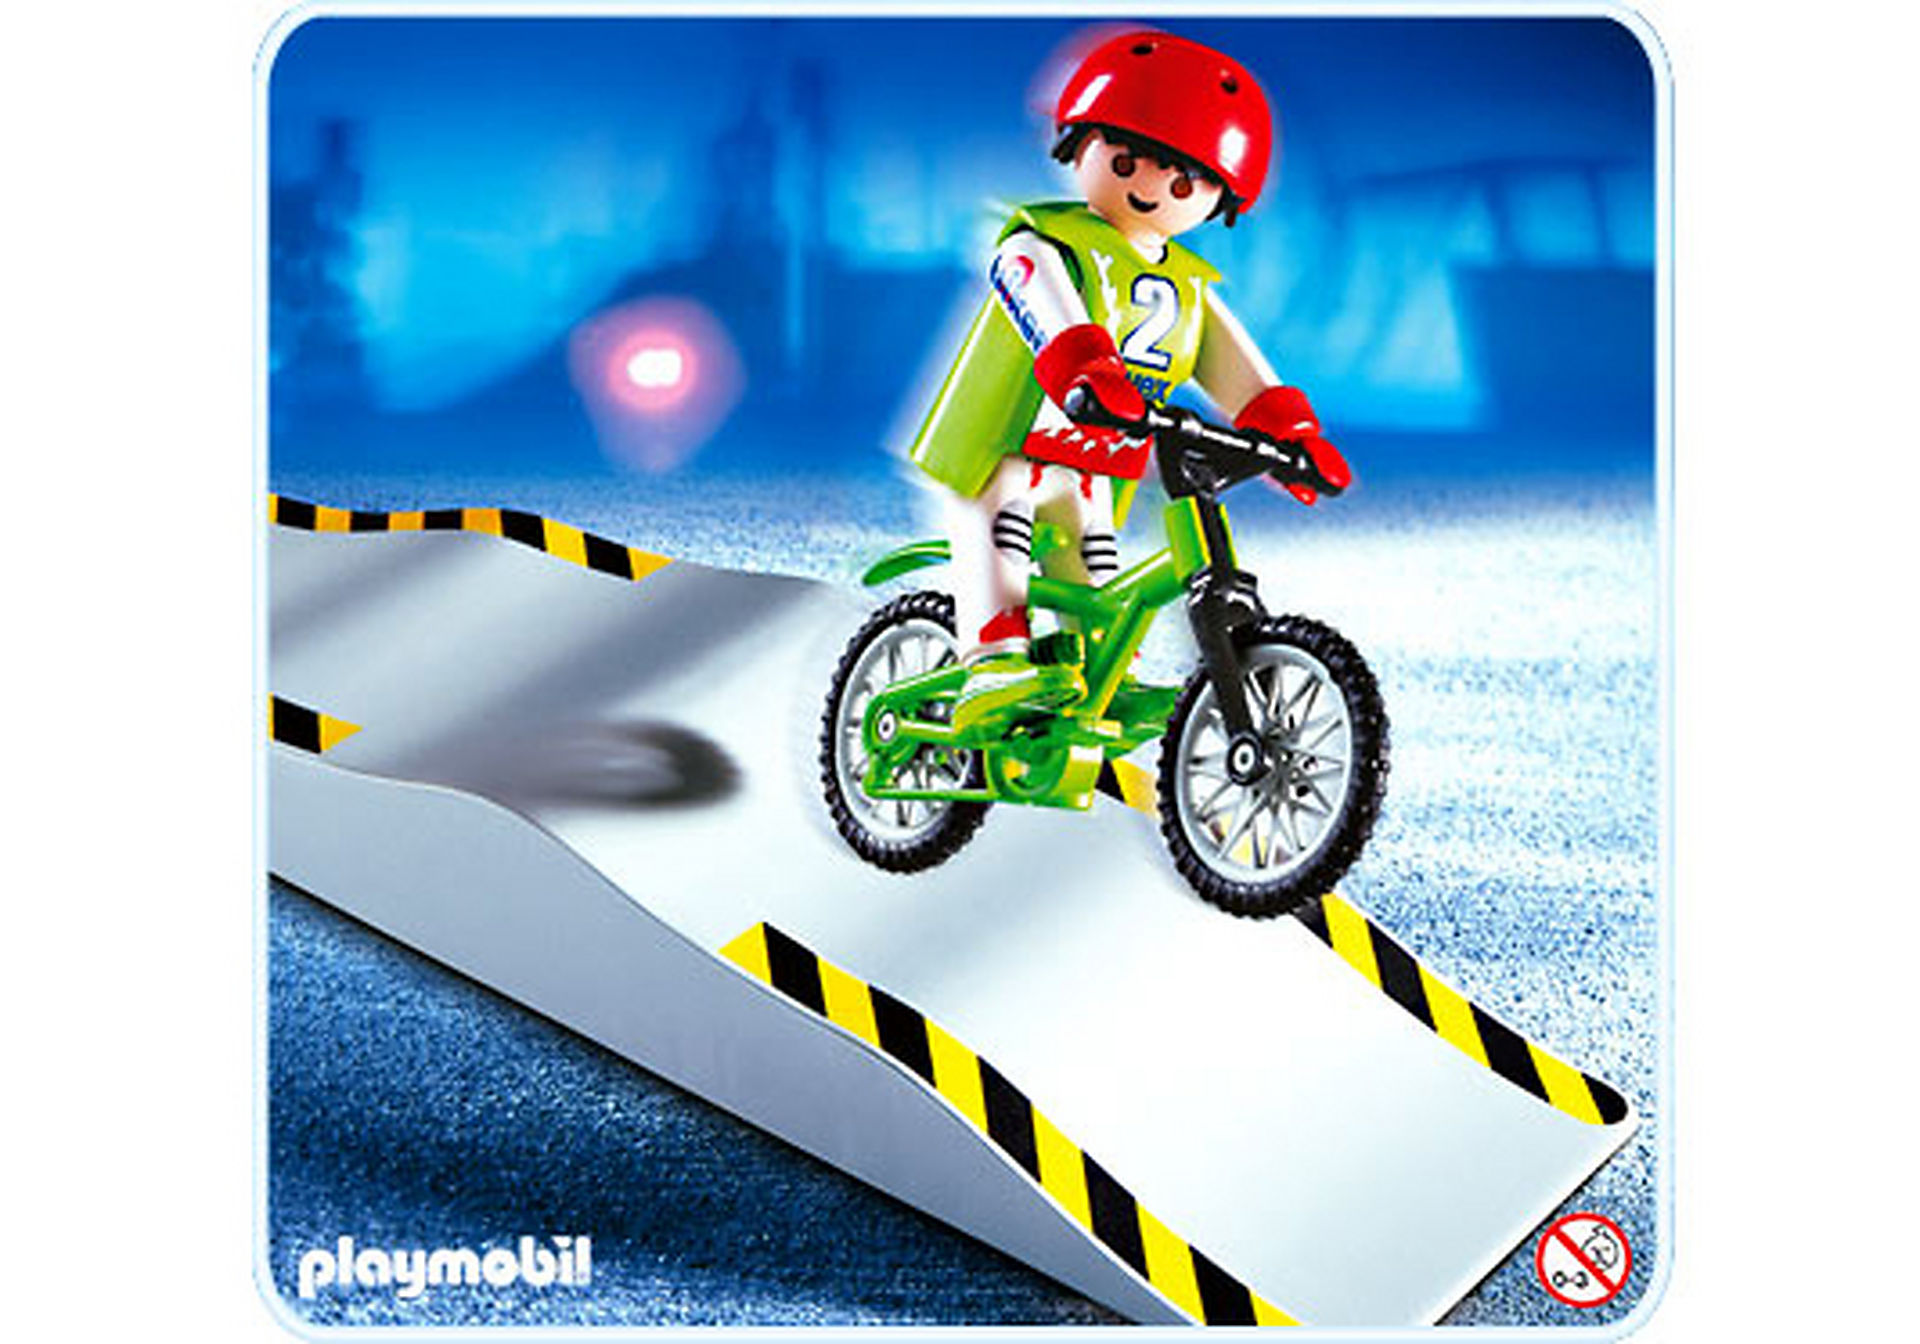 http://media.playmobil.com/i/playmobil/4417-A_product_detail/Mountainbiker mit Wellenrampe